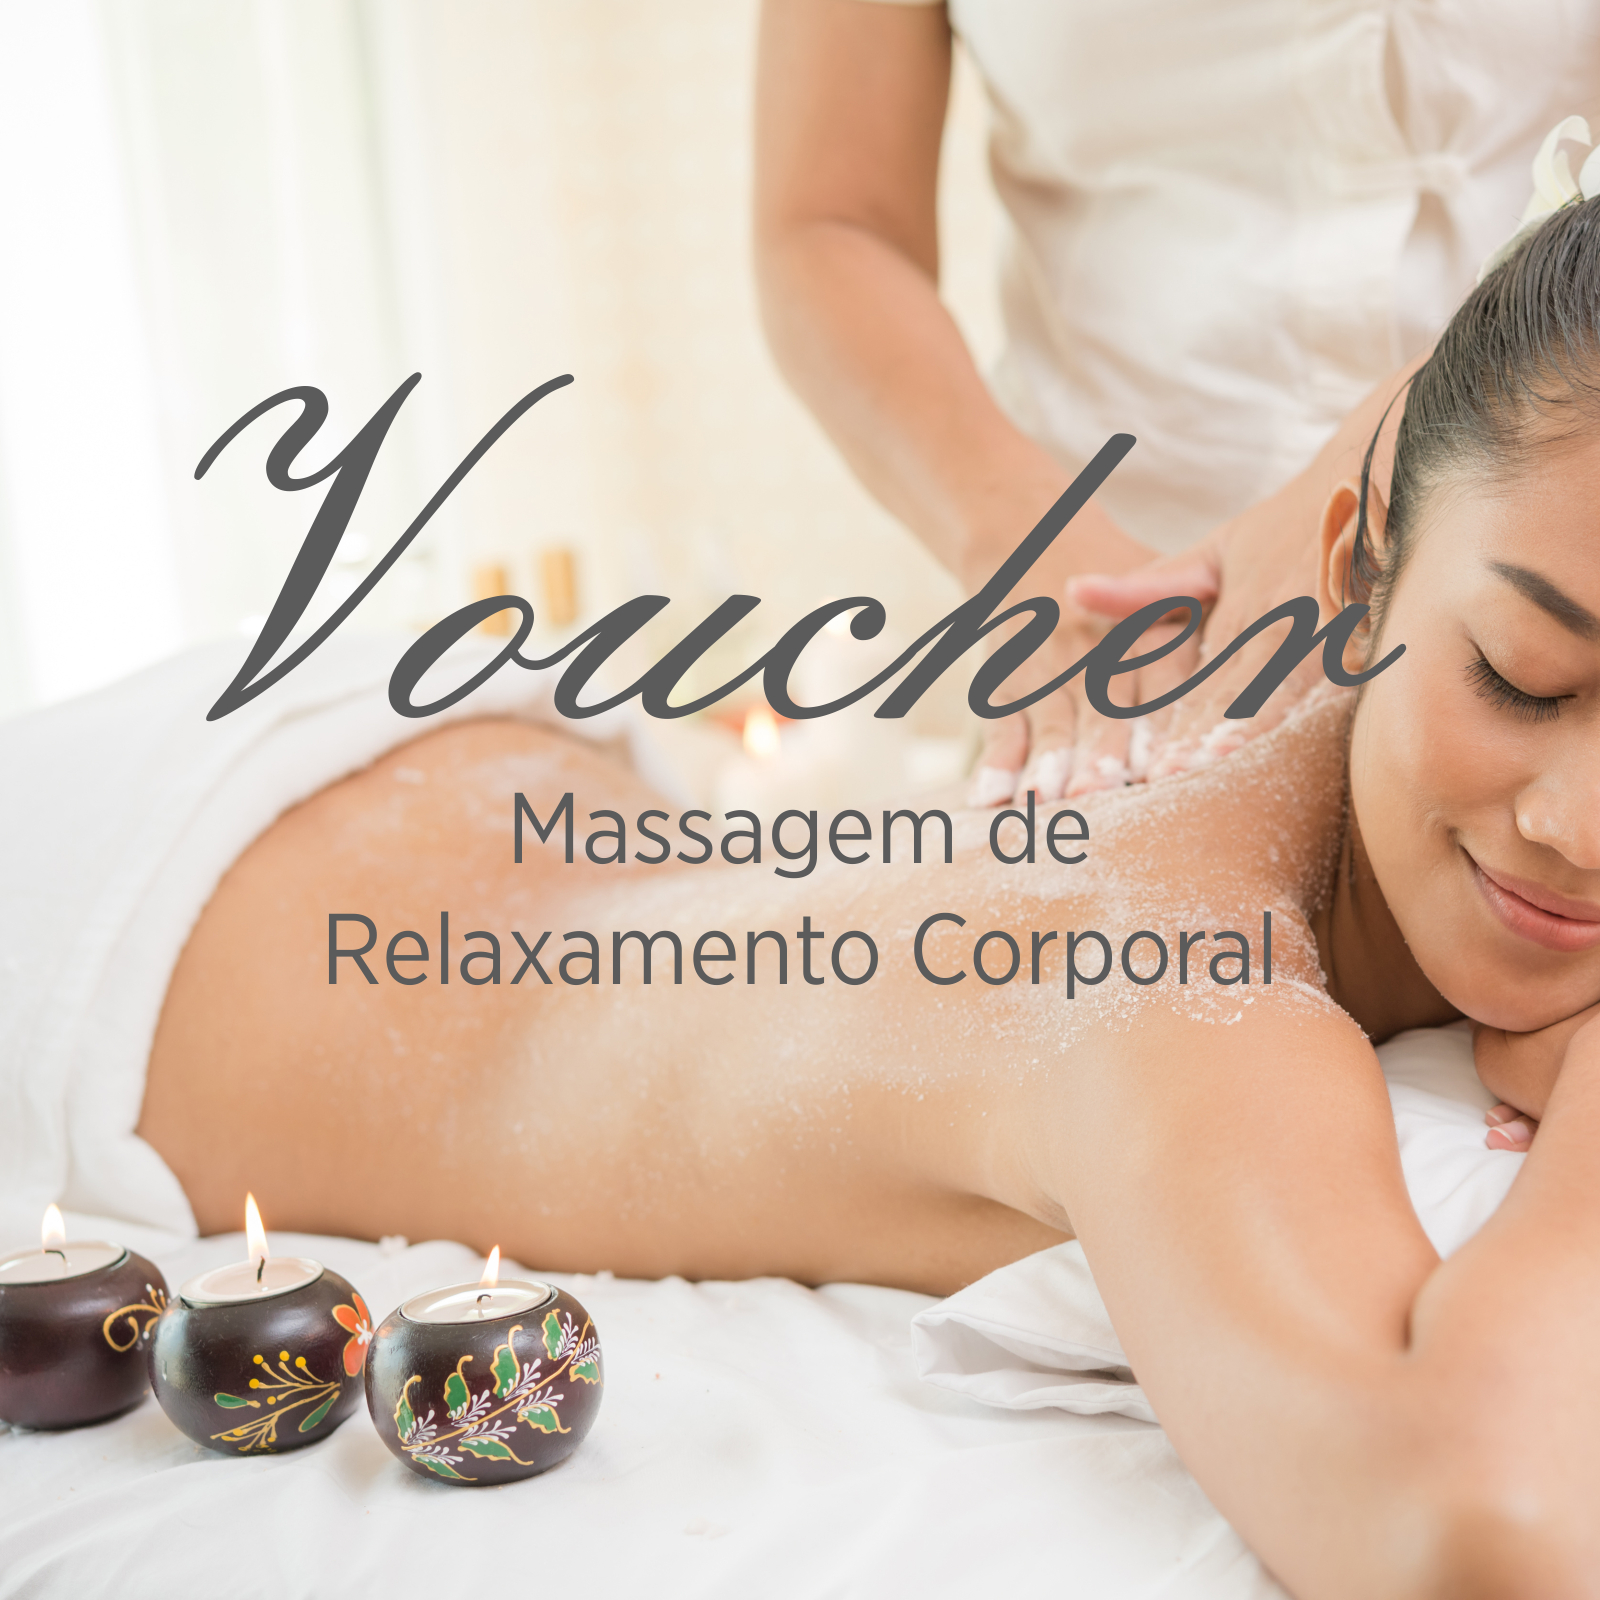 Voucher Massagem de Relaxamento